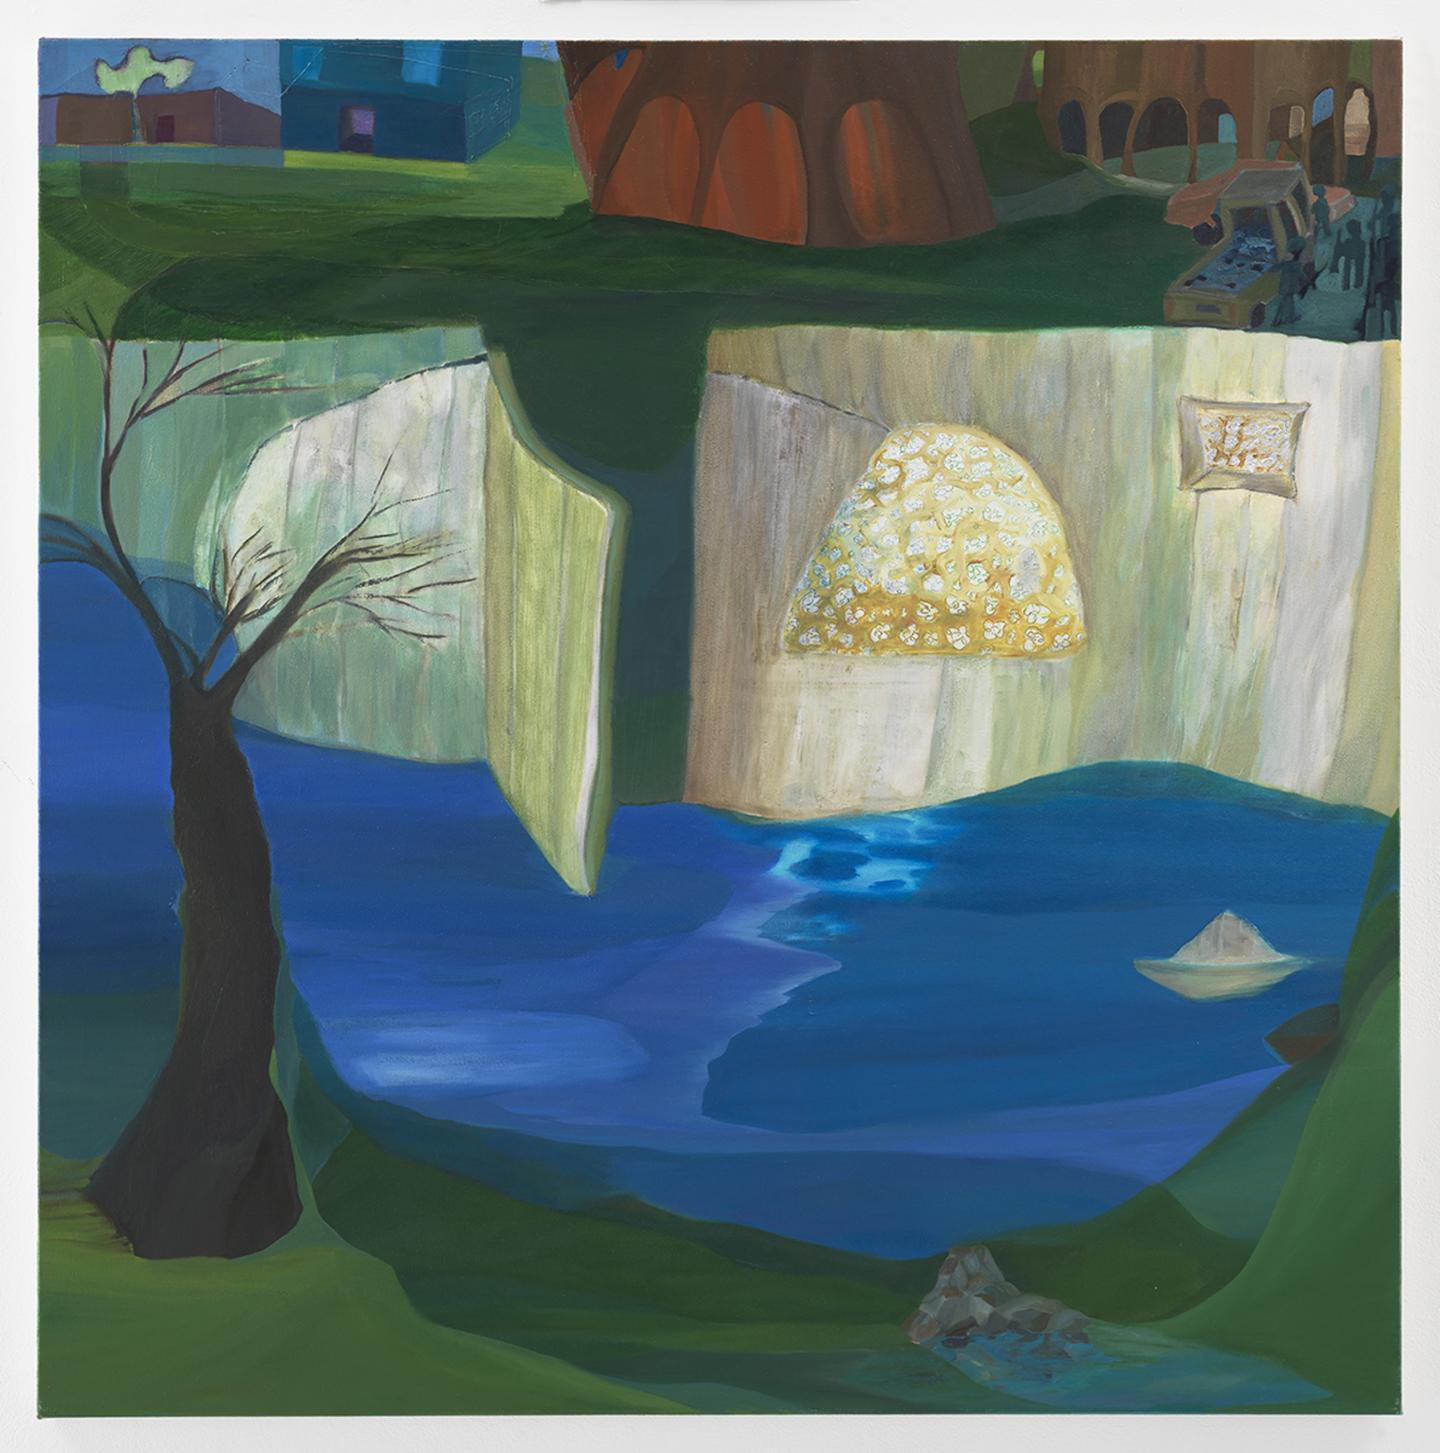 Ficre Ghebreyesus, Gate to the Compound, 2006,  acrylic on canvas, 122.6 x 122.6 cm. Courtesy: Galerie Lelong & Co., New York.